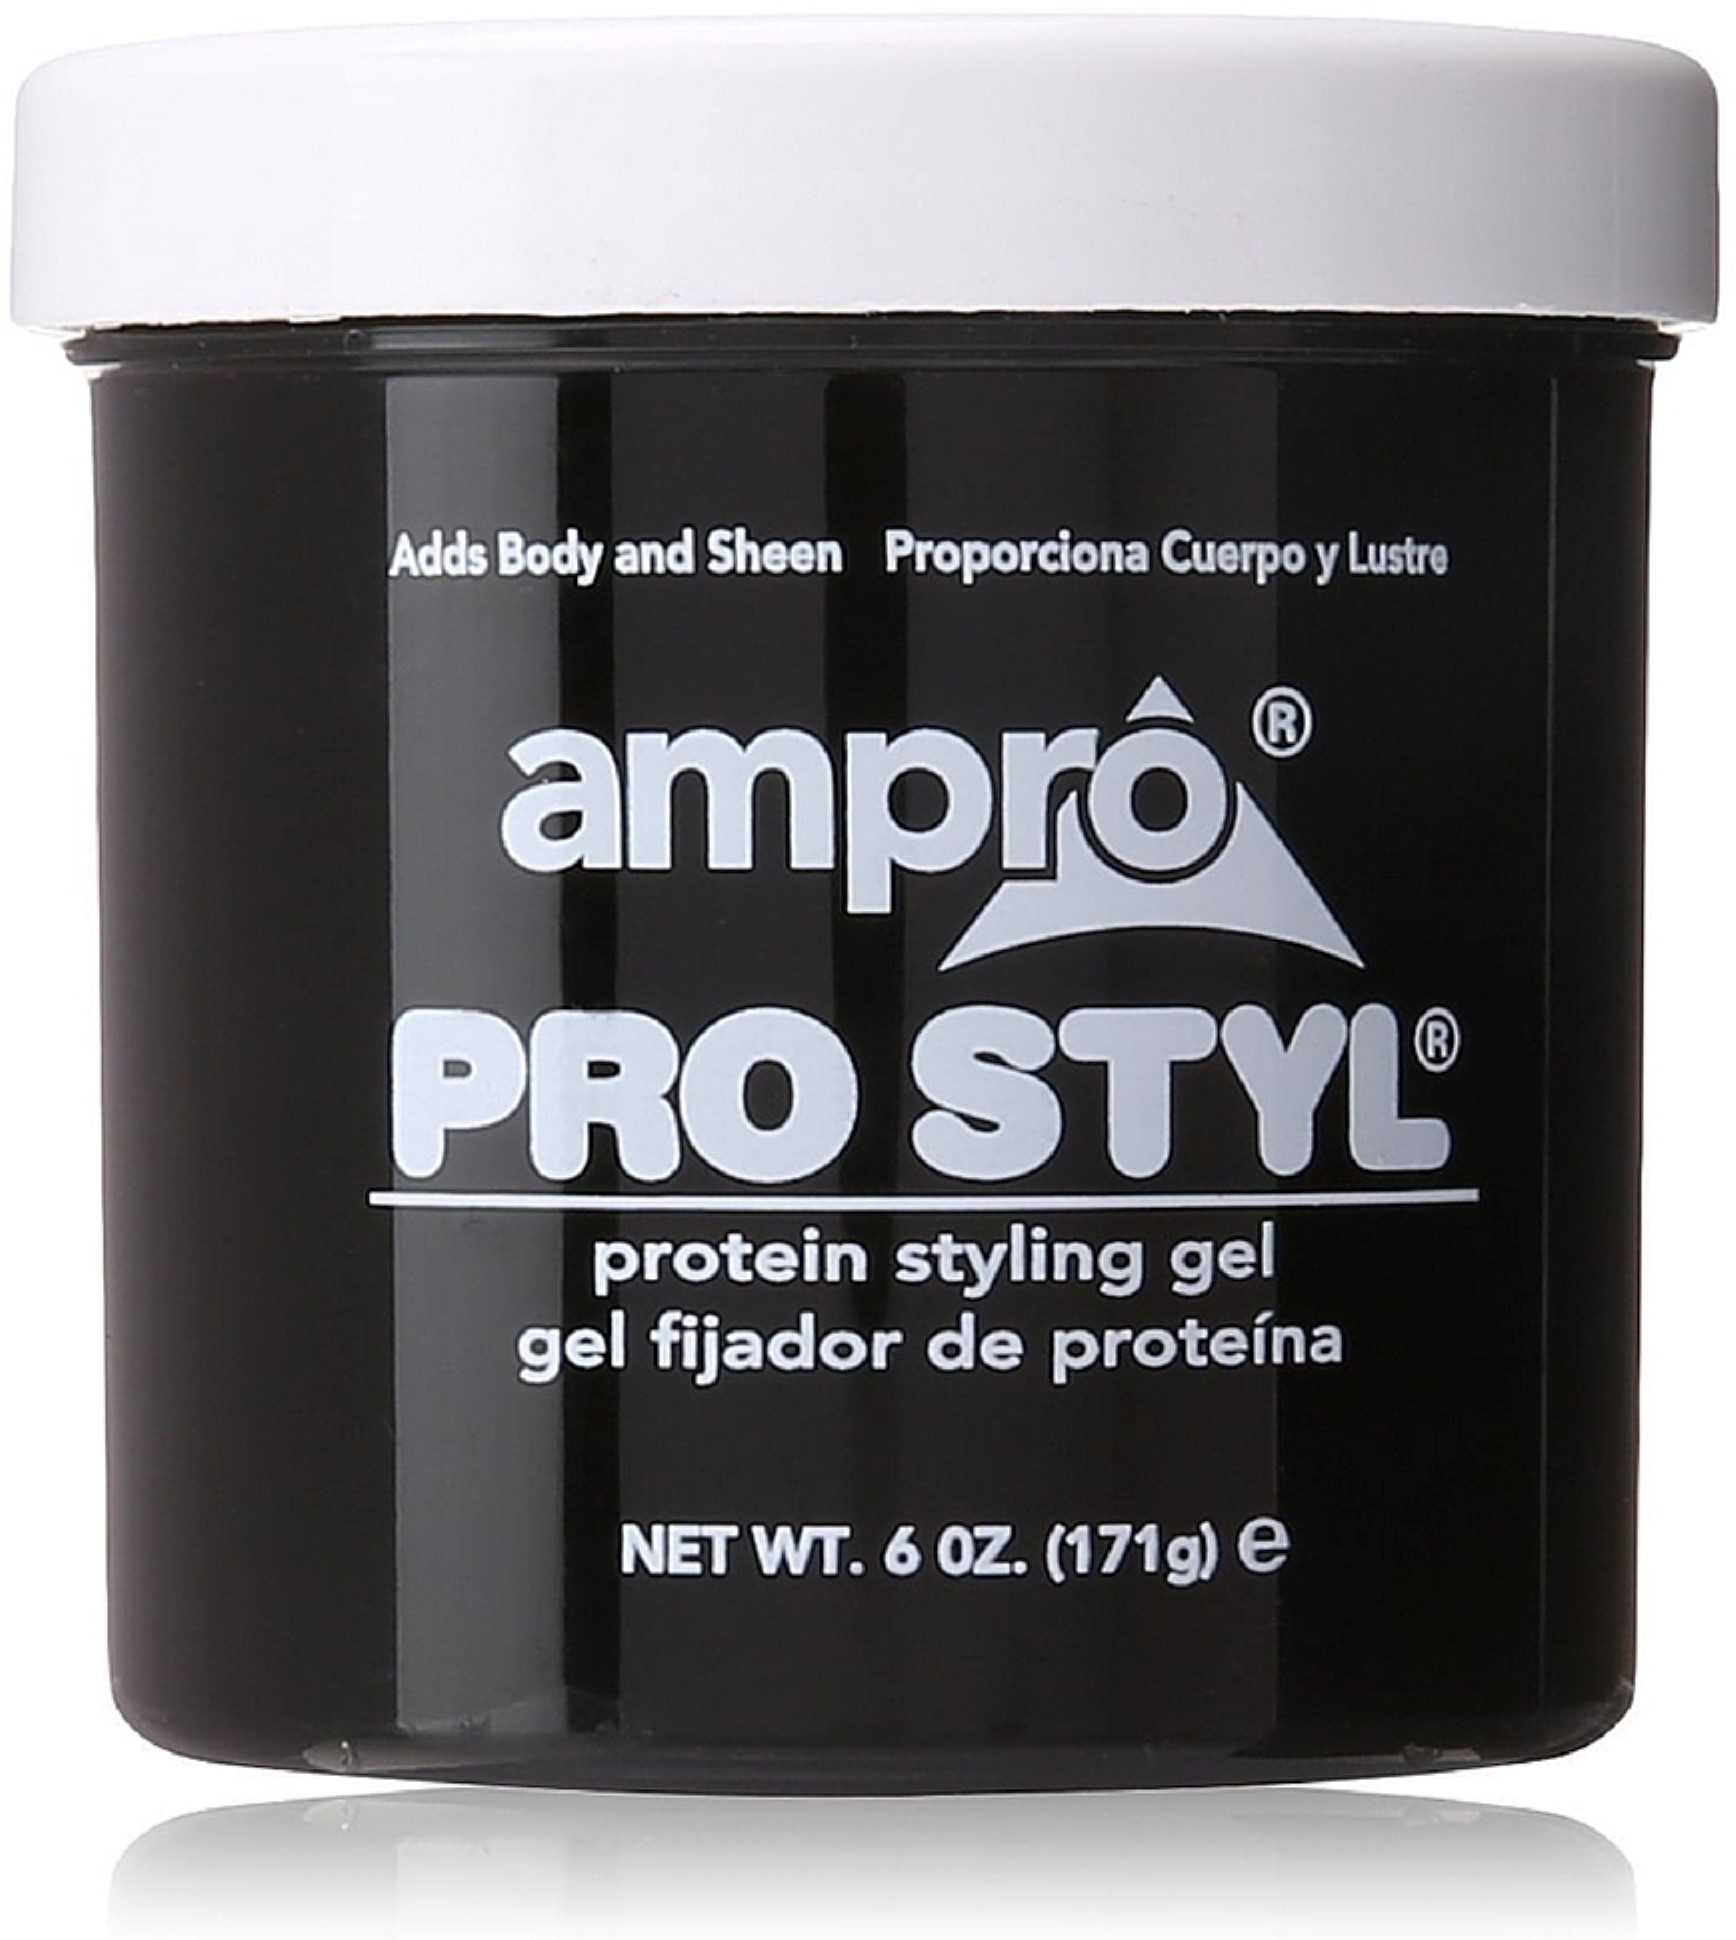 Ampro Pro Style Protein Styling Gel 6 oz (Pack of 6)